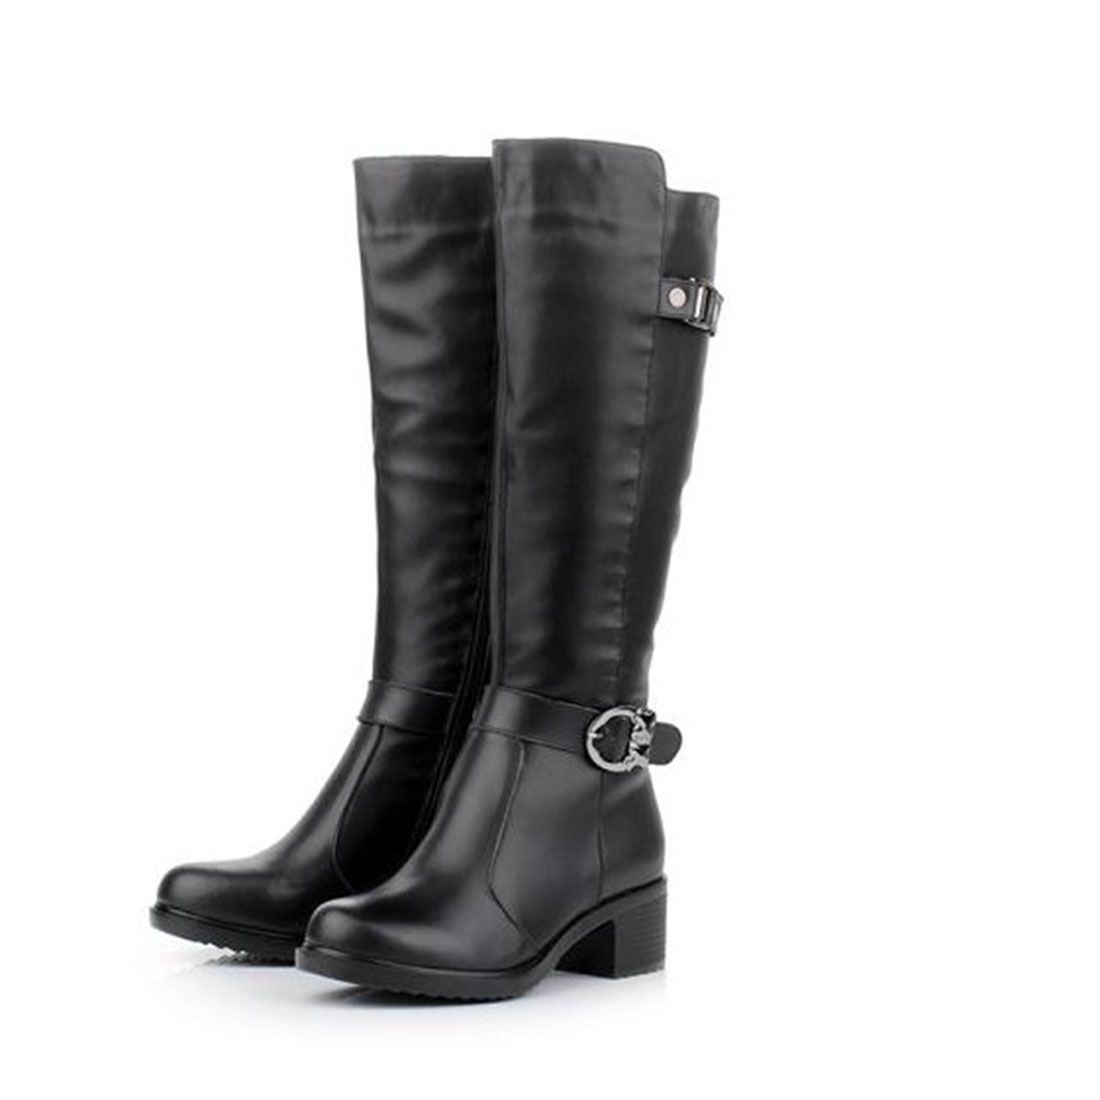 2017 Fashion women boots PU Leather Knee High Boot Women Round Toe Elastic Vintage Thick Heel Thigh High Riding Boots Size 40 2015 hottest drop shipping vintage round toe strappy zip knee high boots studs chunky heel leather boots women high heels j459